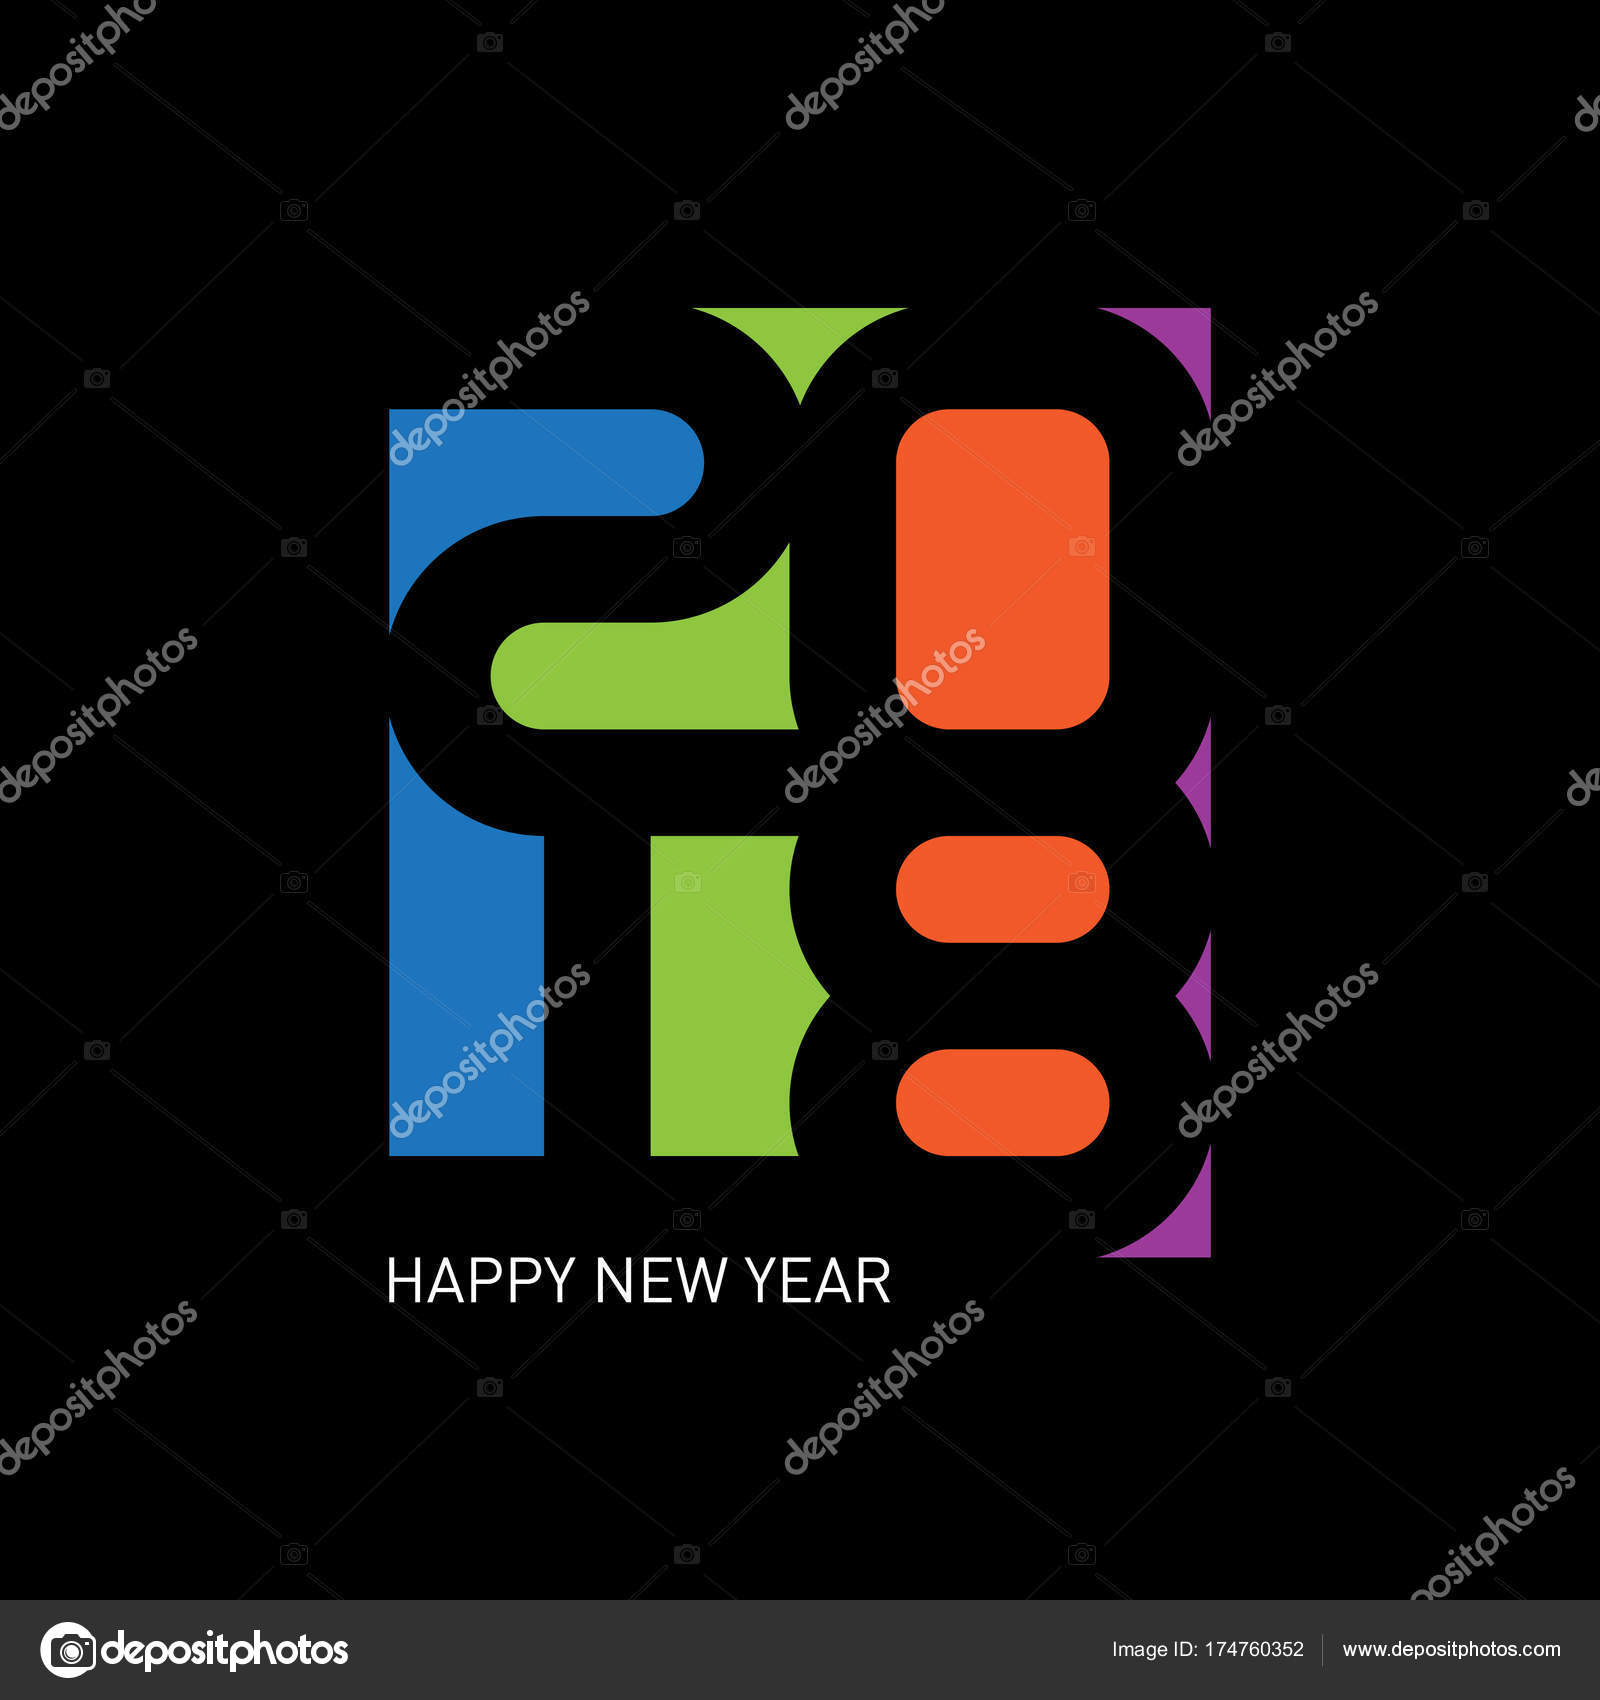 Happy new year 2018 cover business diary 2018 vector greeting happy new year 2018 cover business diary 2018 vector greeting stock vector m4hsunfo